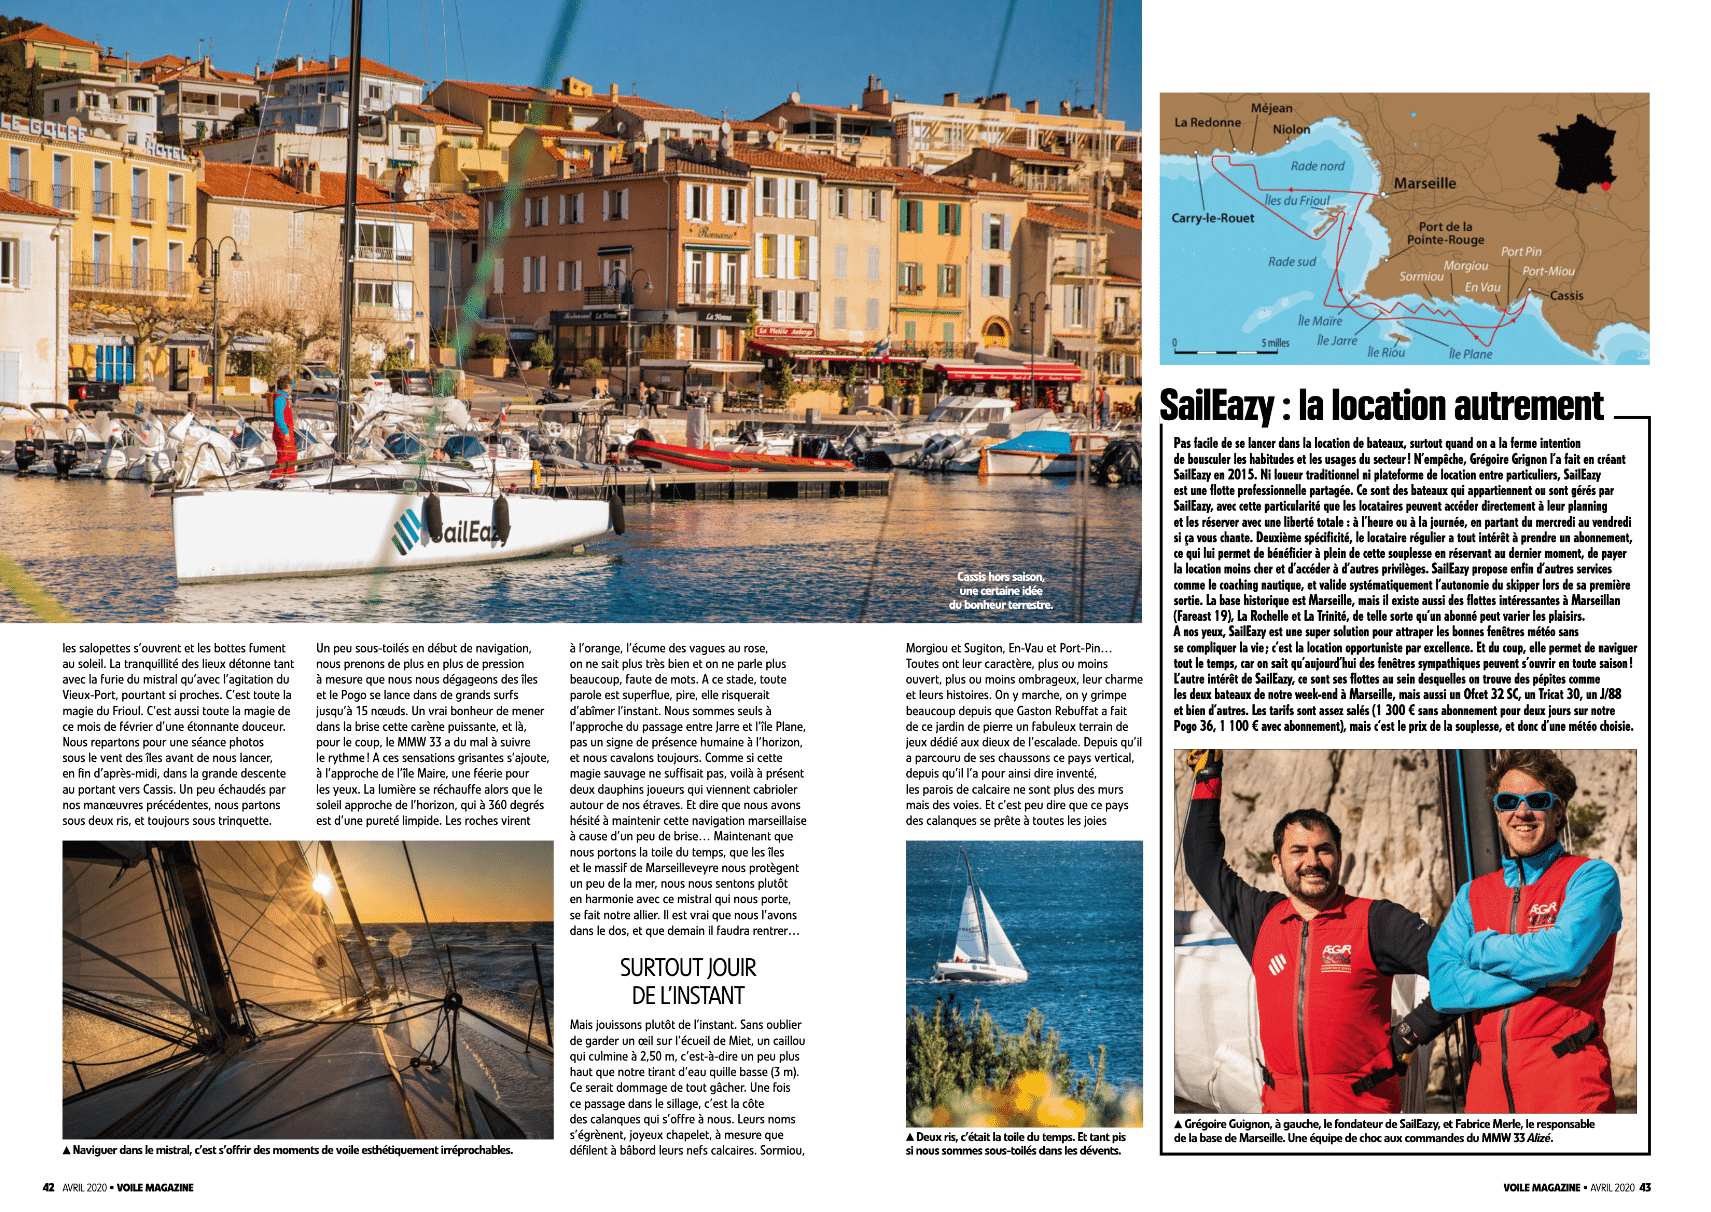 03 - Louer en France le temps d'un week-end (Voile Magazine Avril 2020)